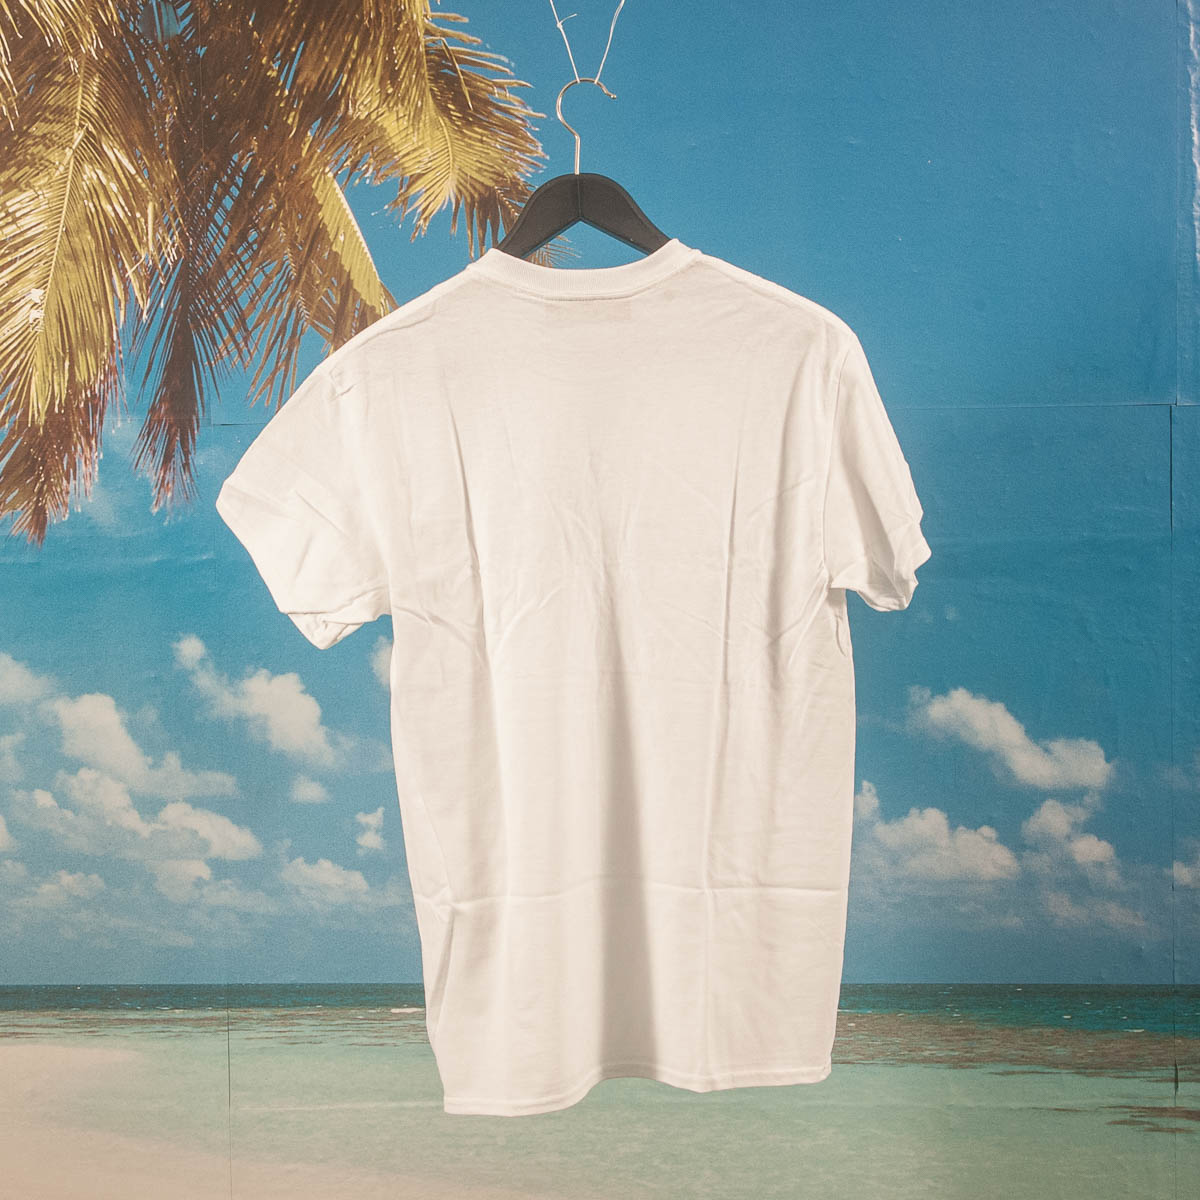 Call Me (917) - Legs Pocket T-Shirt - White